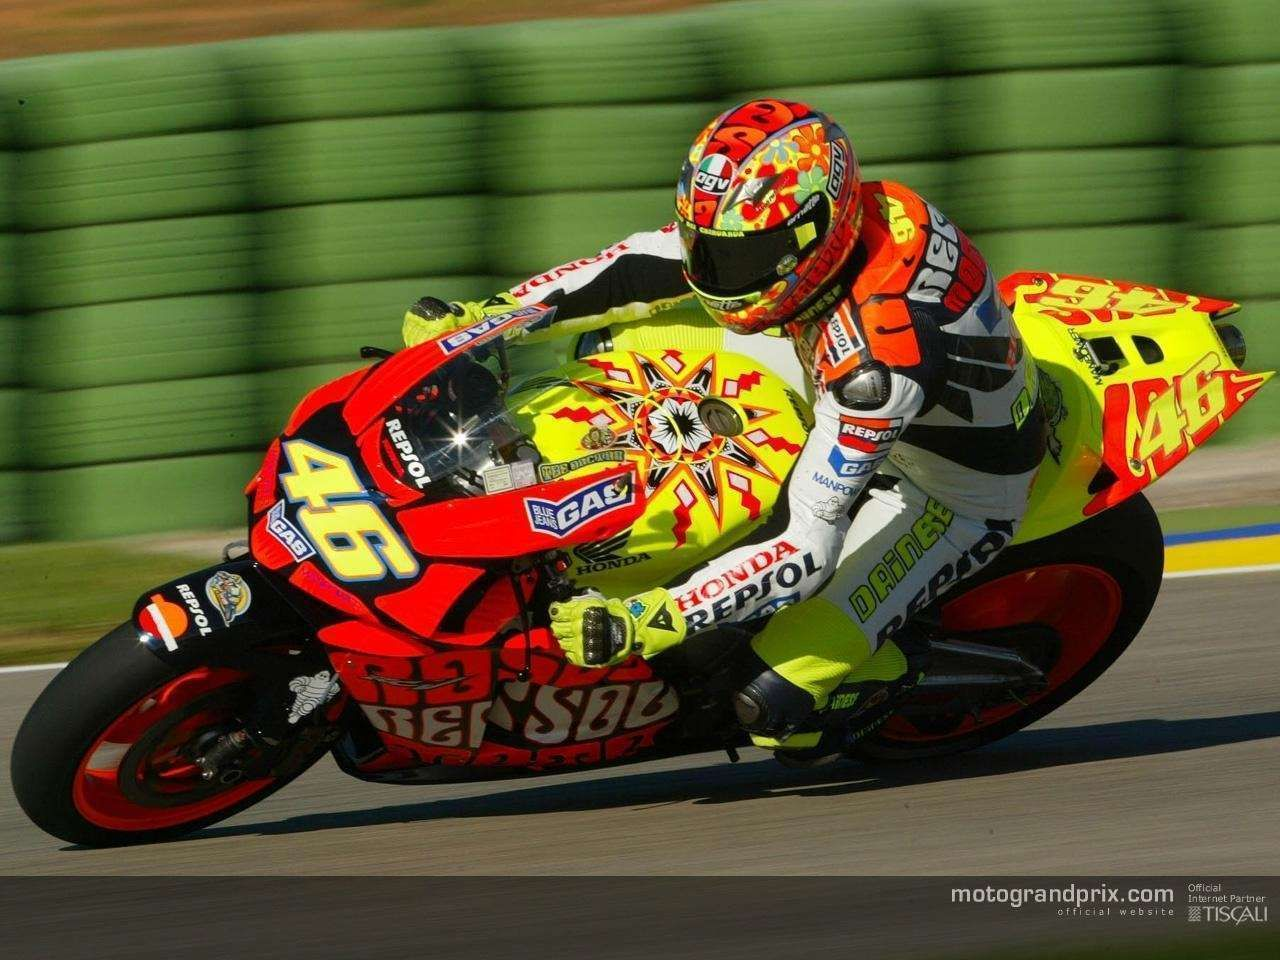 Click Here To Download In Hd Format Rossi Valencia 03 Wallpaper